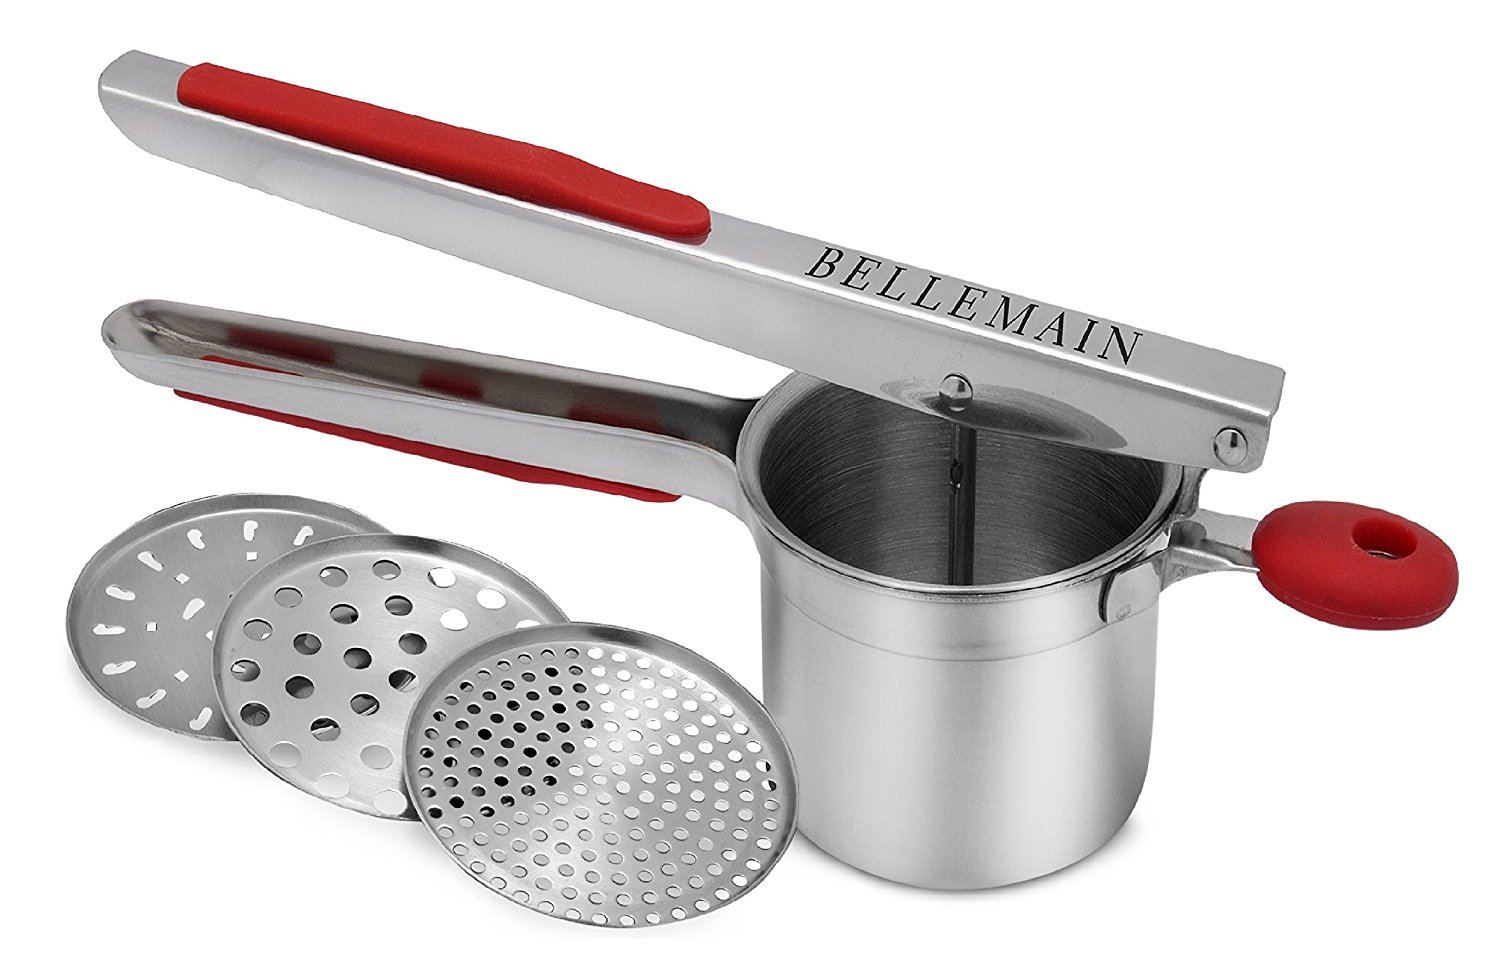 Bellemain Ergonomic Adjustable Potato Ricer